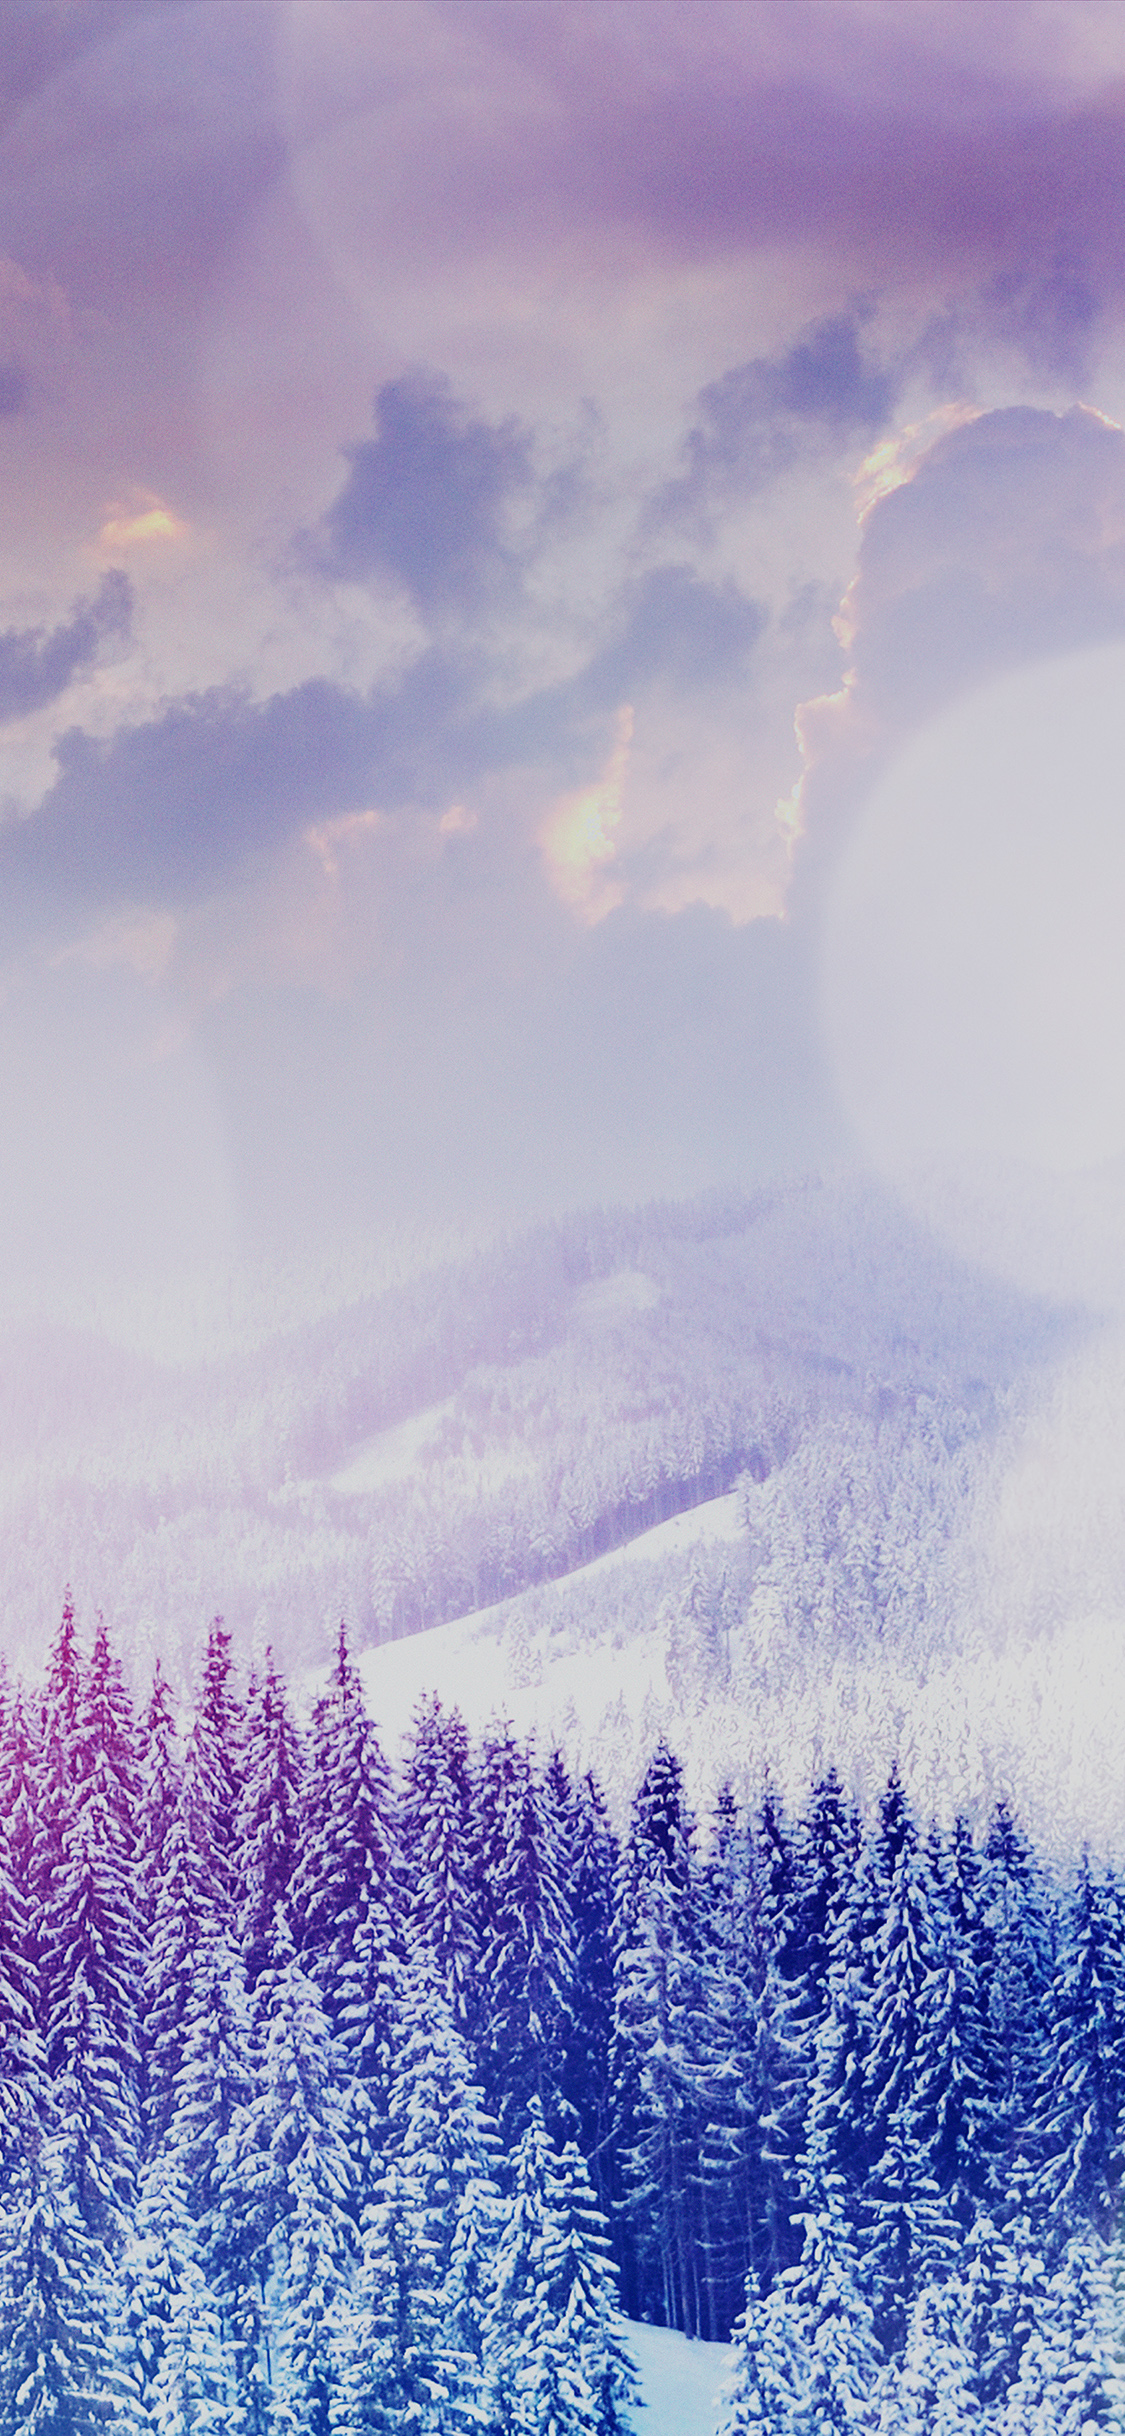 Wallpapers Hipster Iphone Winter Wallpaper Pack For Ipad Iphone And Desktop